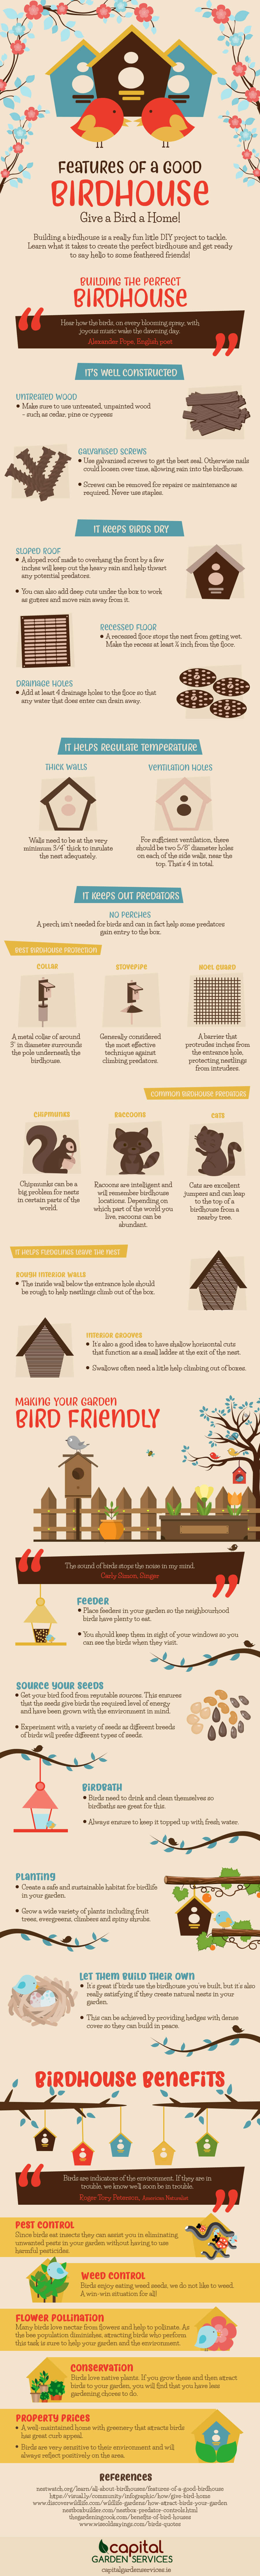 Features-of-a-Good-Birdhouse–Give-a-Bird-a-Home-infographic-plaza